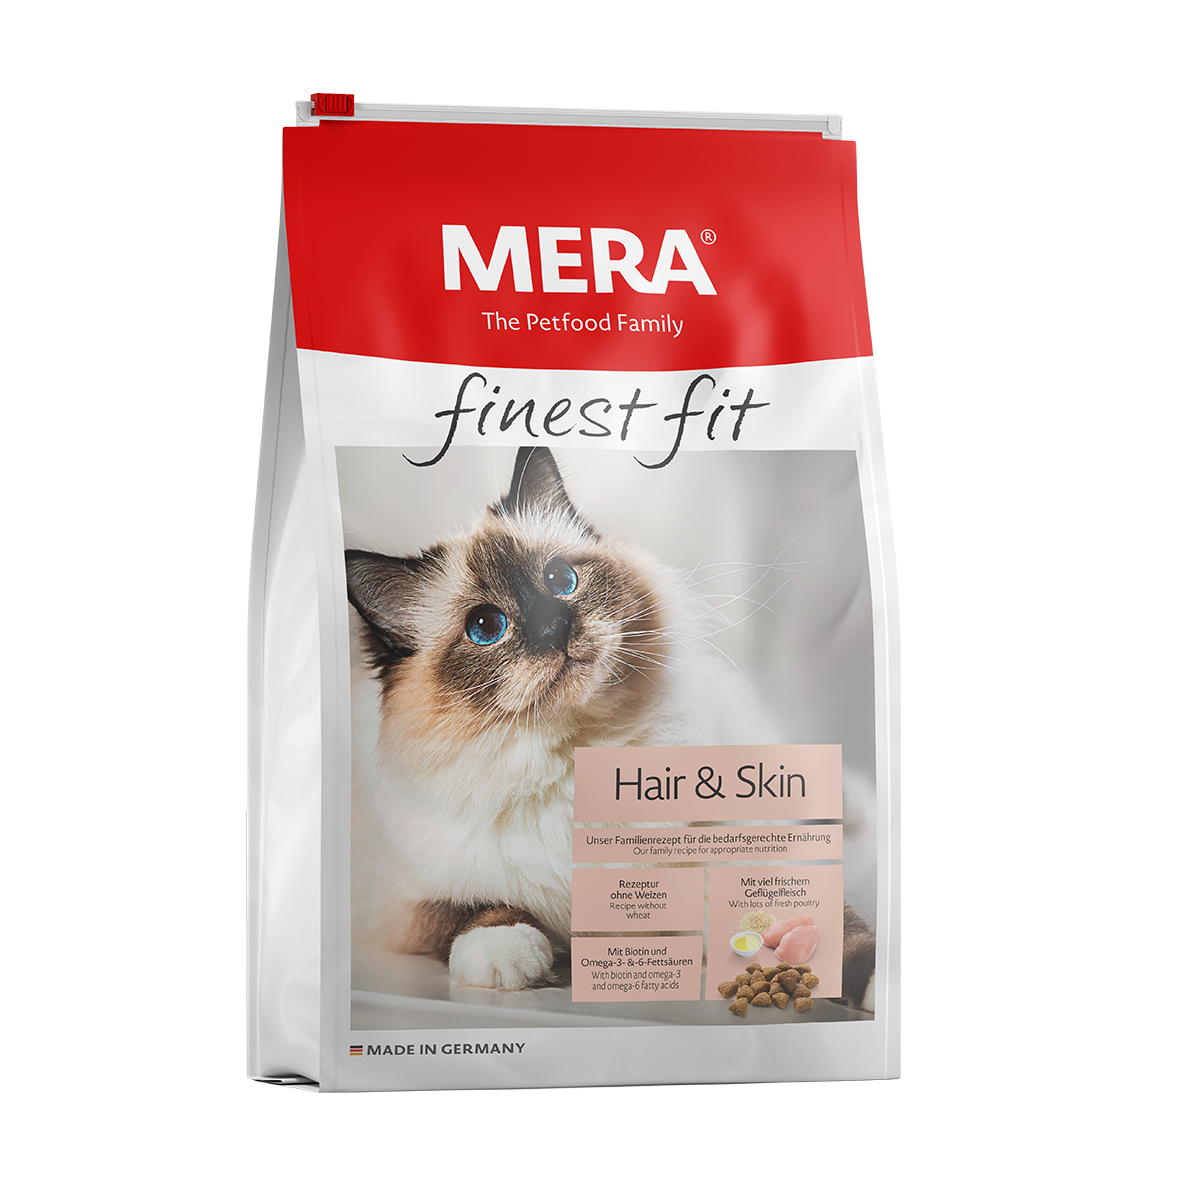 221602 1 mera cat mera finest fit trock